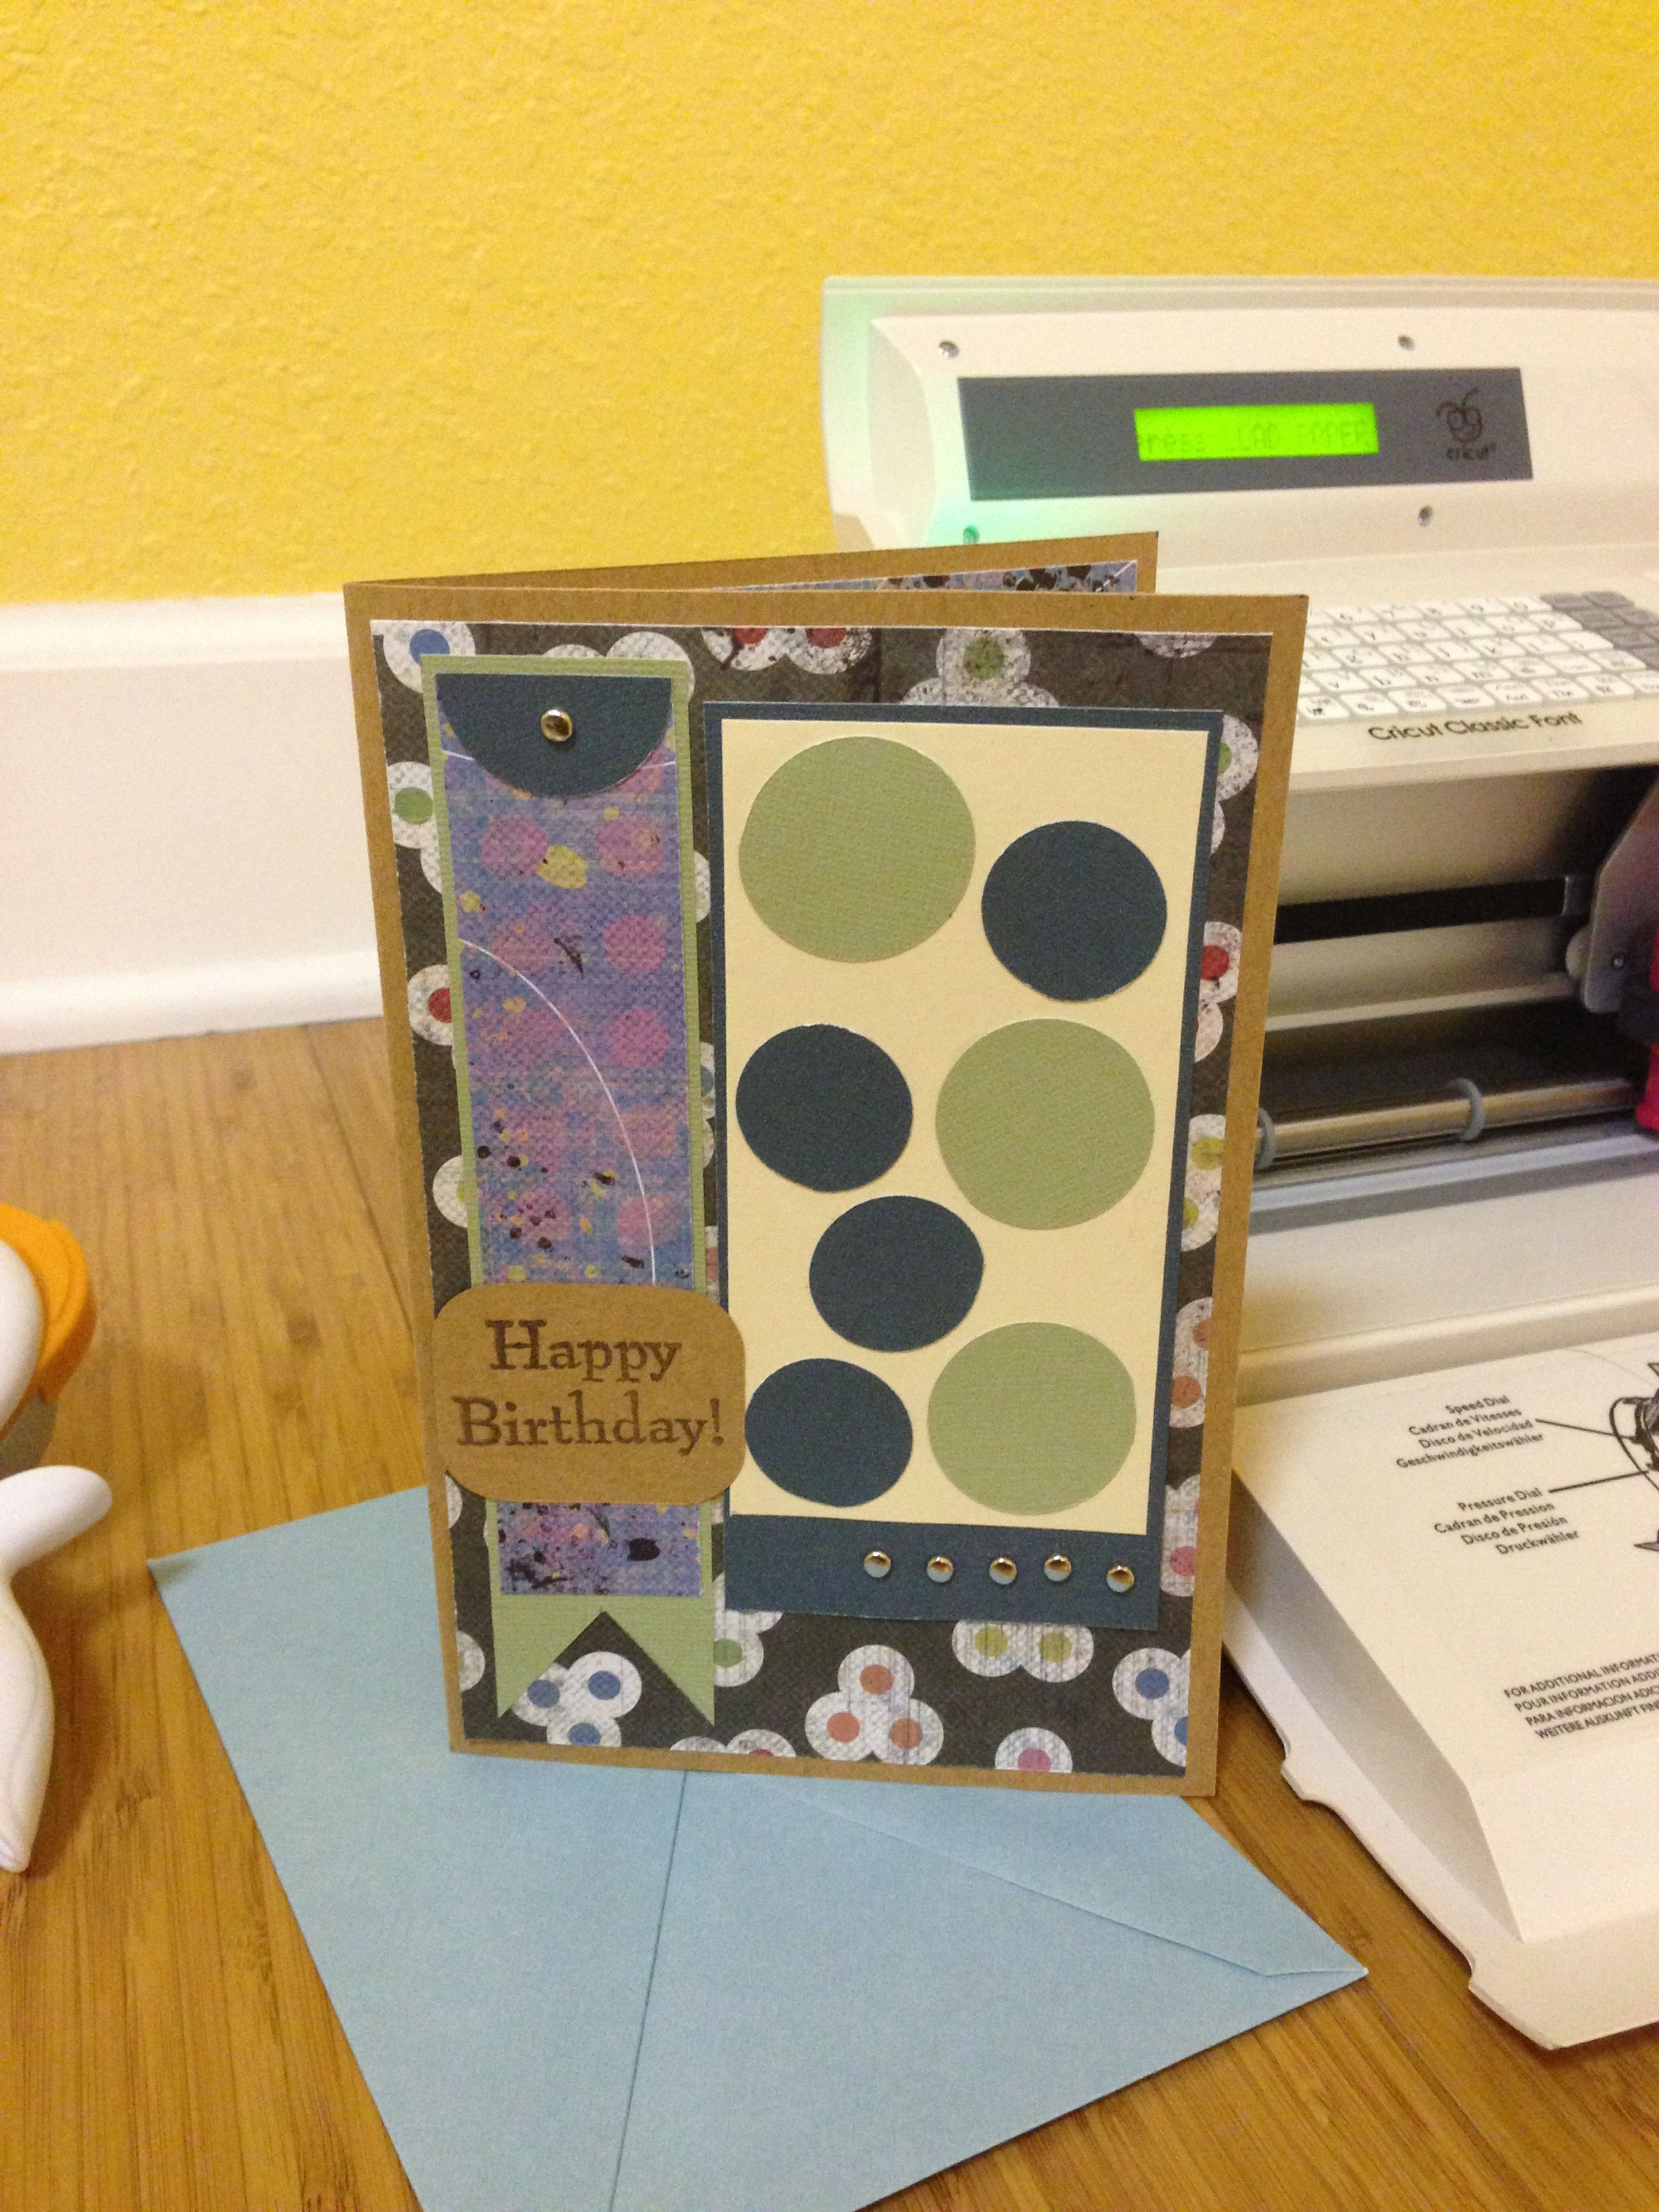 Homemade birthday card handmade cards pinterest homemade